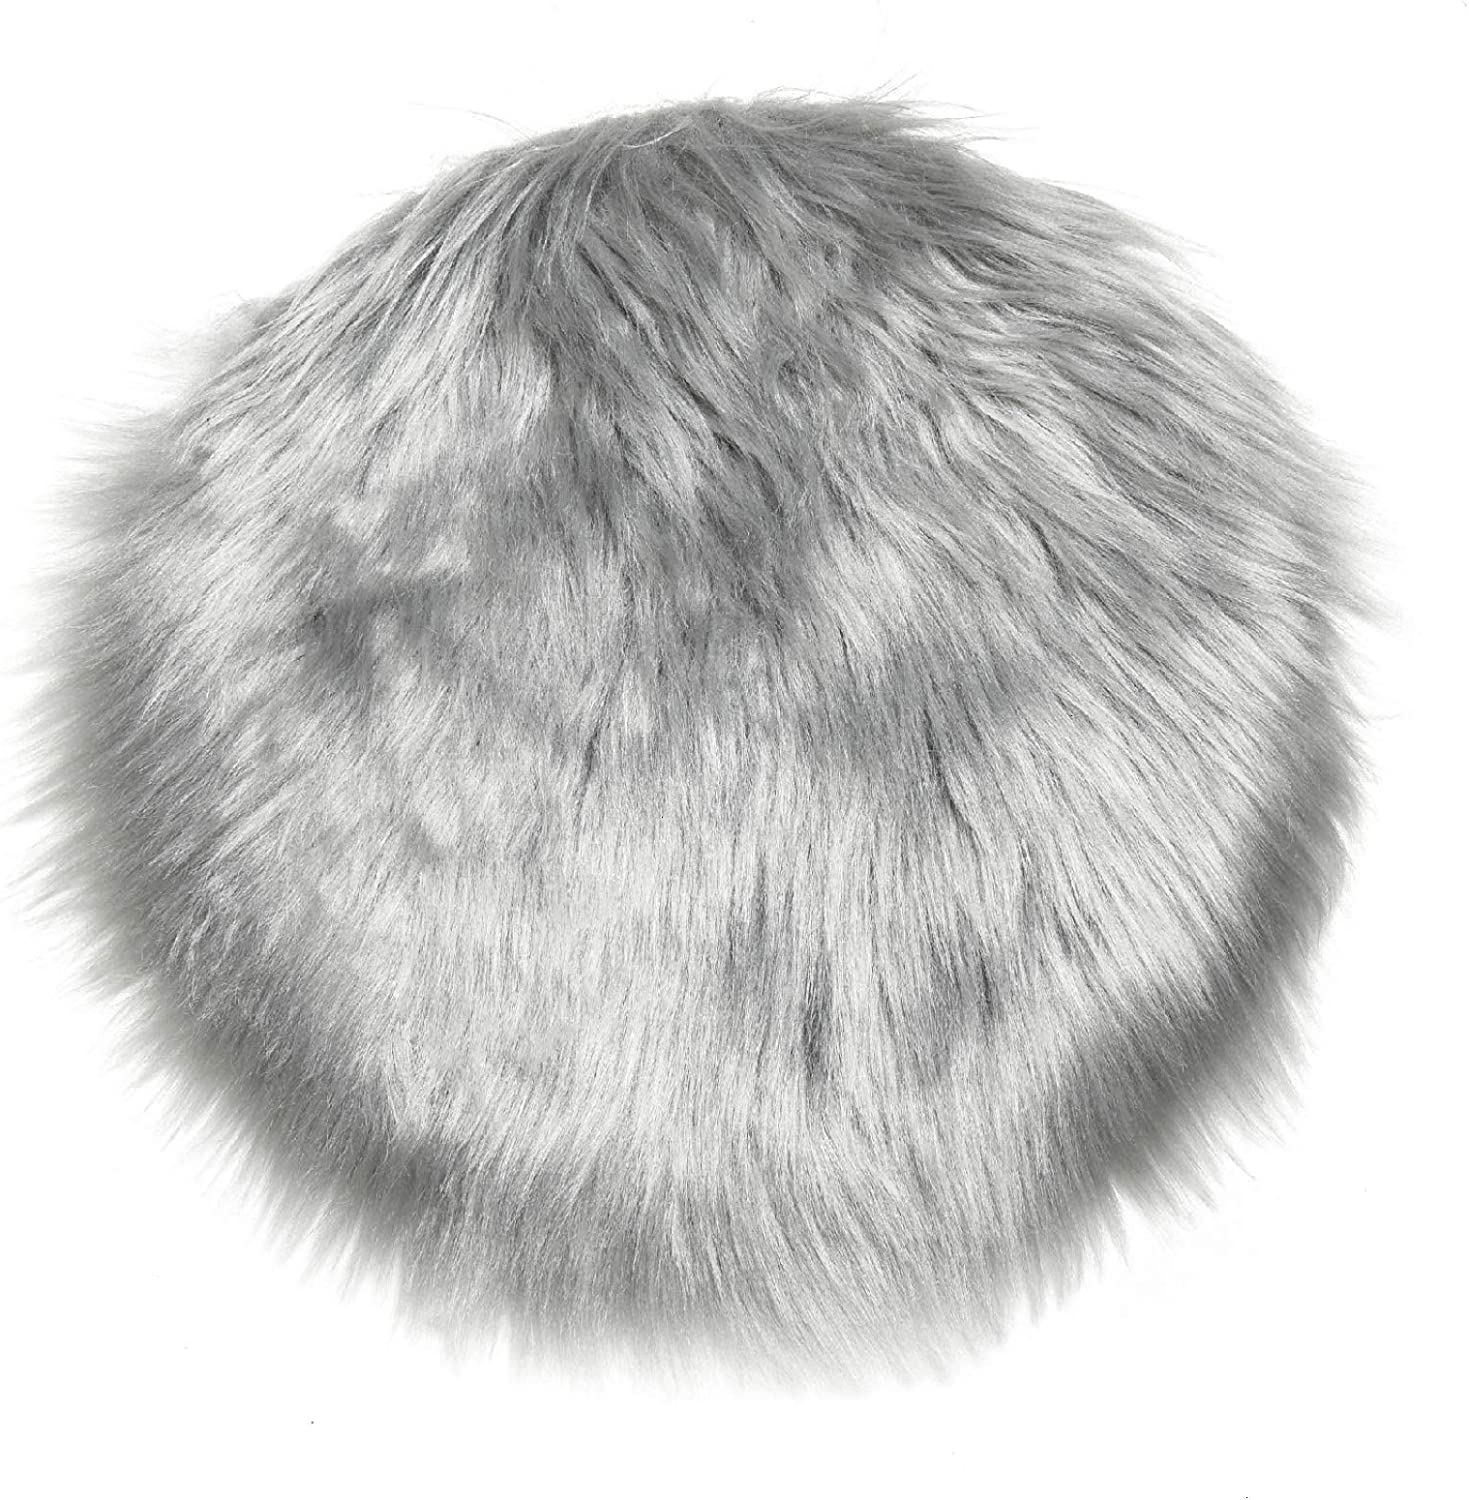 AQUEENLY Sheepskin Cushion Faux Fur Seat Cover Round Area Rugs for Office Bedroom Living Room, 12 inches (Grey)